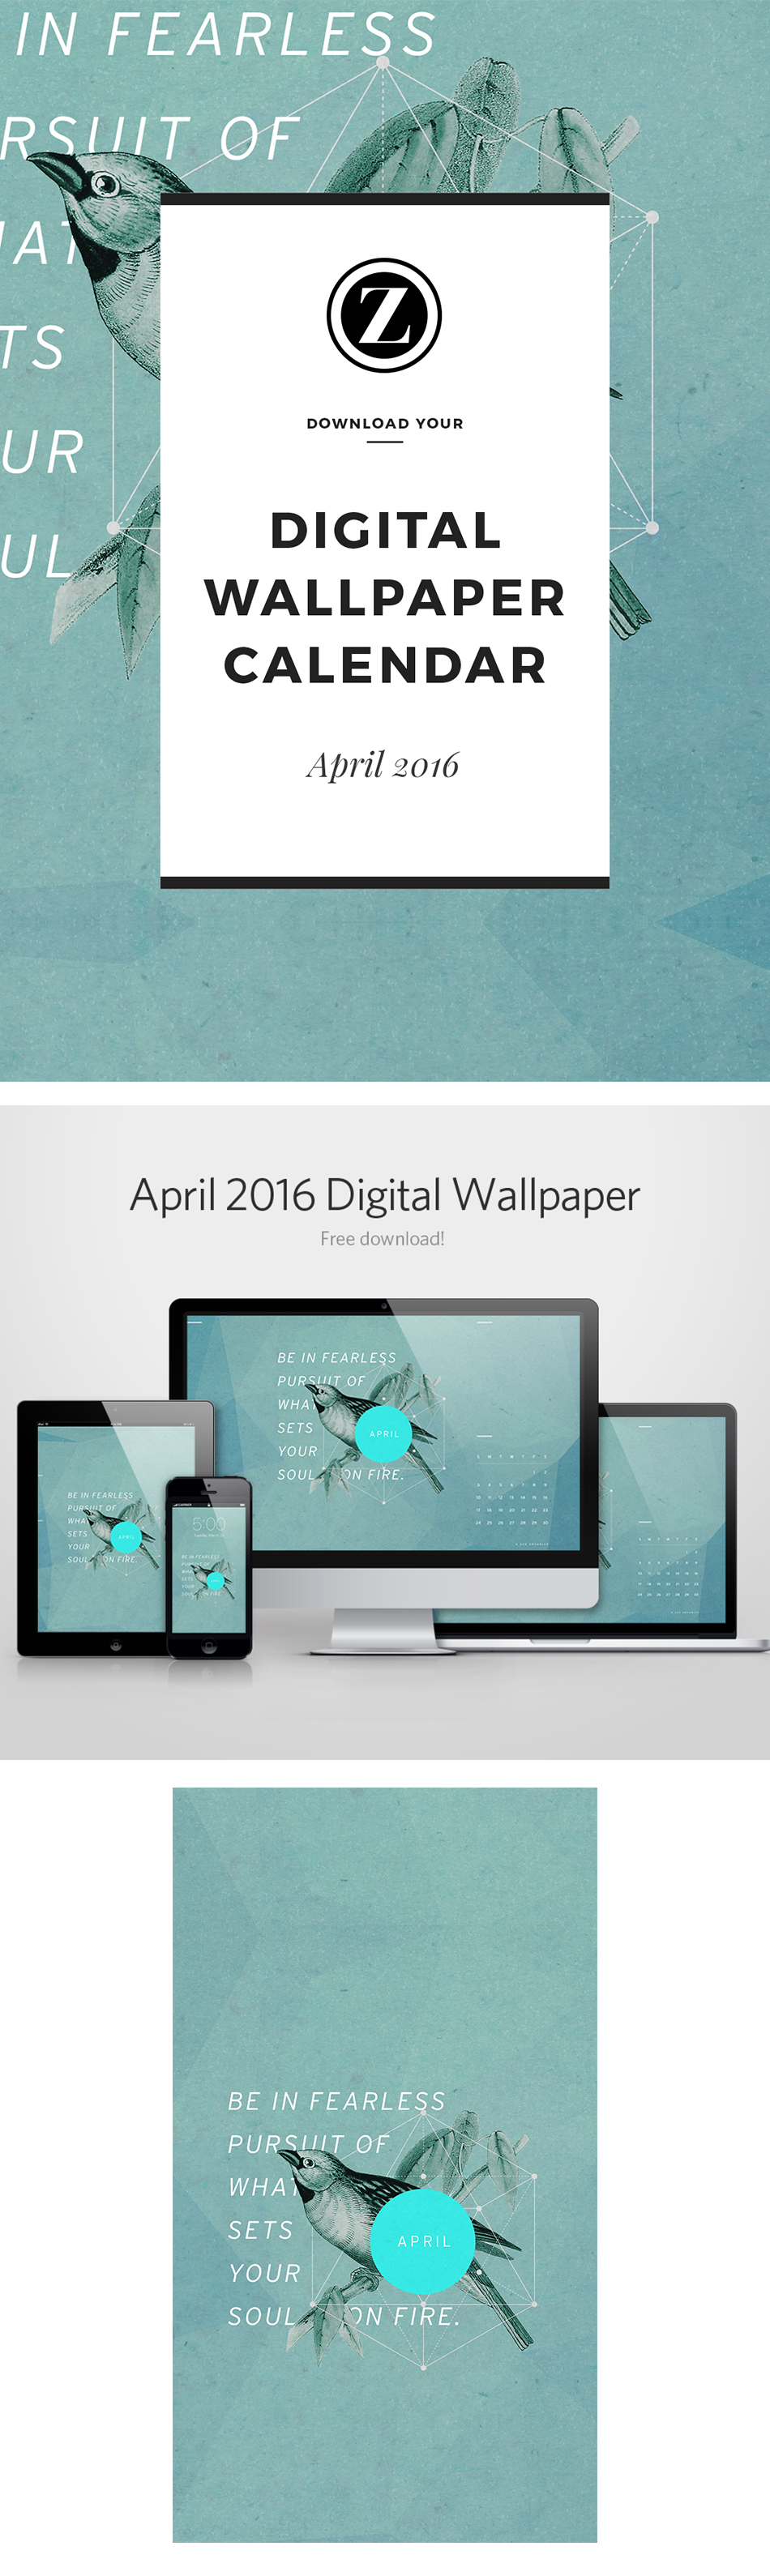 Digital Wallpaper Calendar: April 2016 – Freebie!